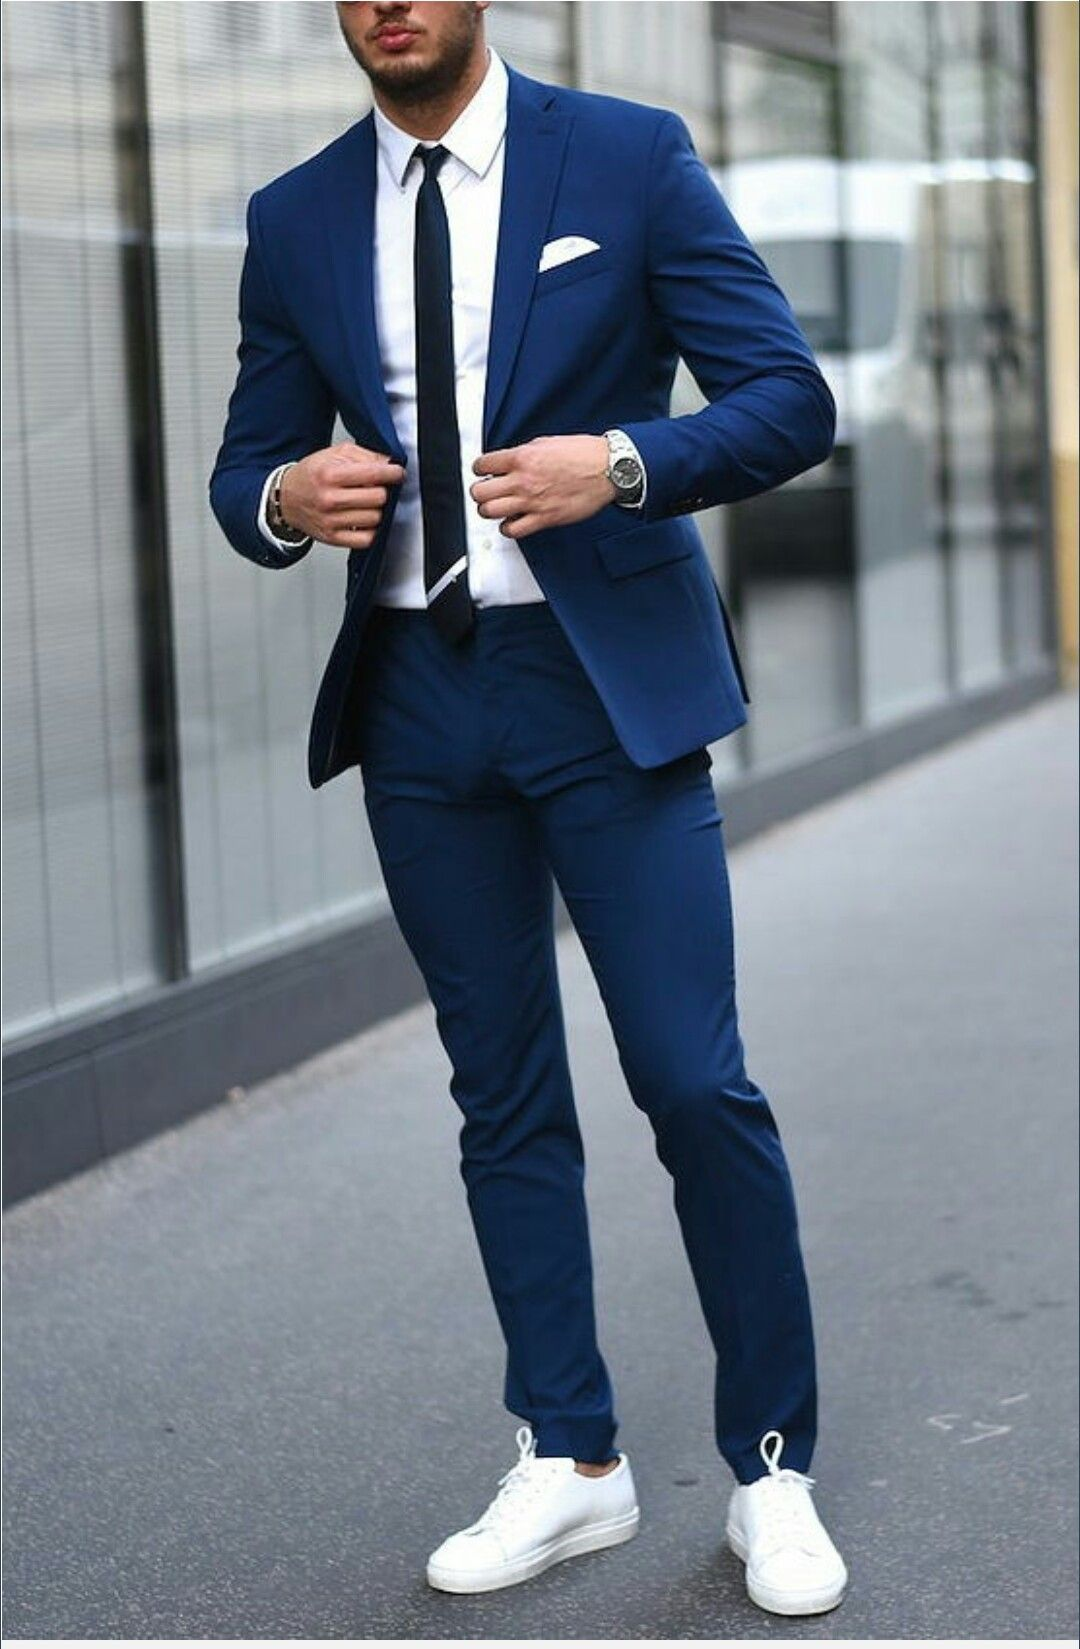 Fine Nice Suits For Prom Ideas - All Wedding Dresses ...